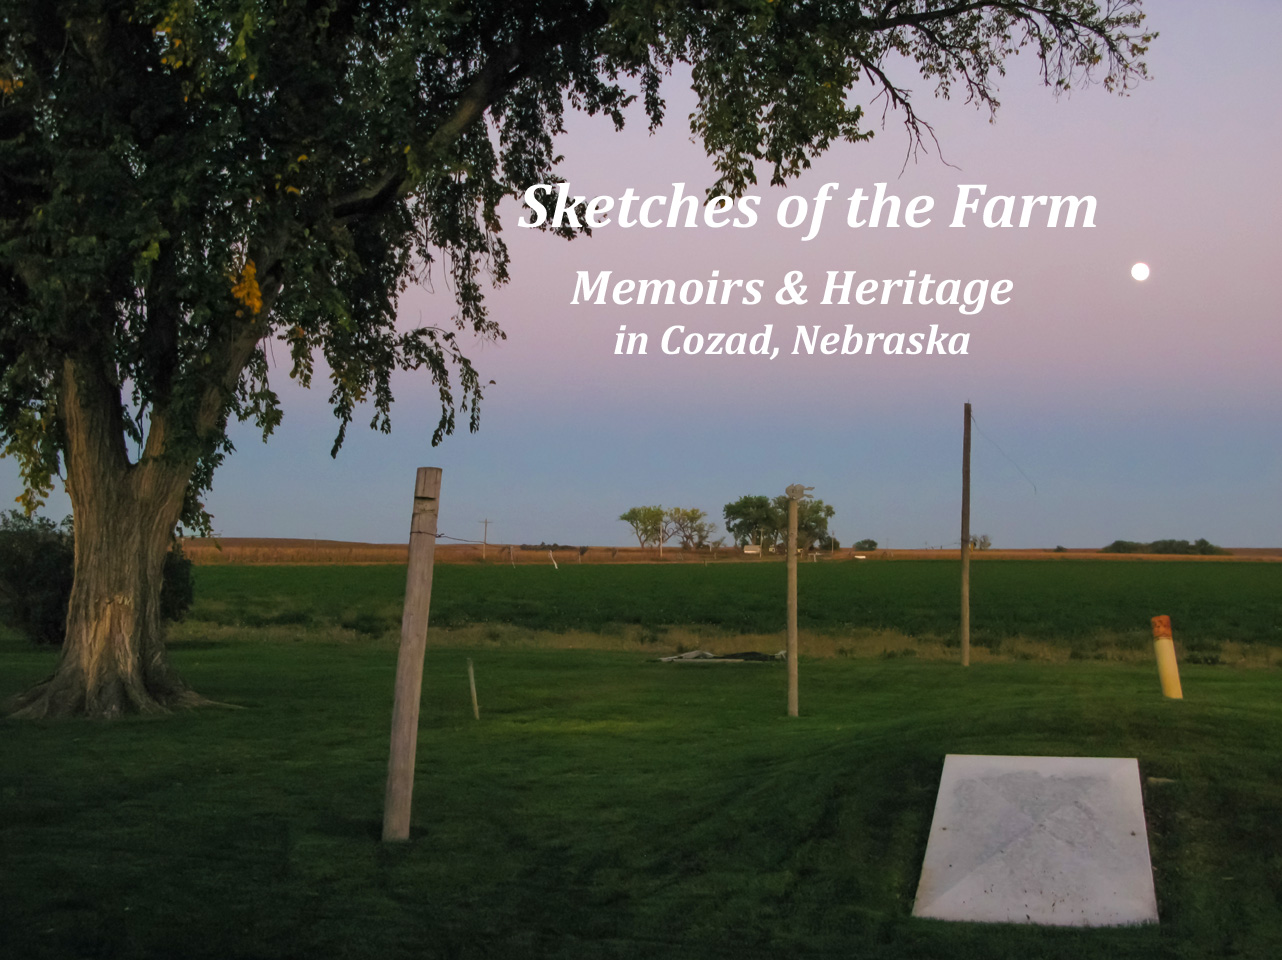 Sketches of the Farm: Memoirs and Heritage in Cozad, Nebraska. My grandparents' backyard, the home my mom was born in in the distance, the cellar in the foreground. Clarence and Beulah Maack farm.